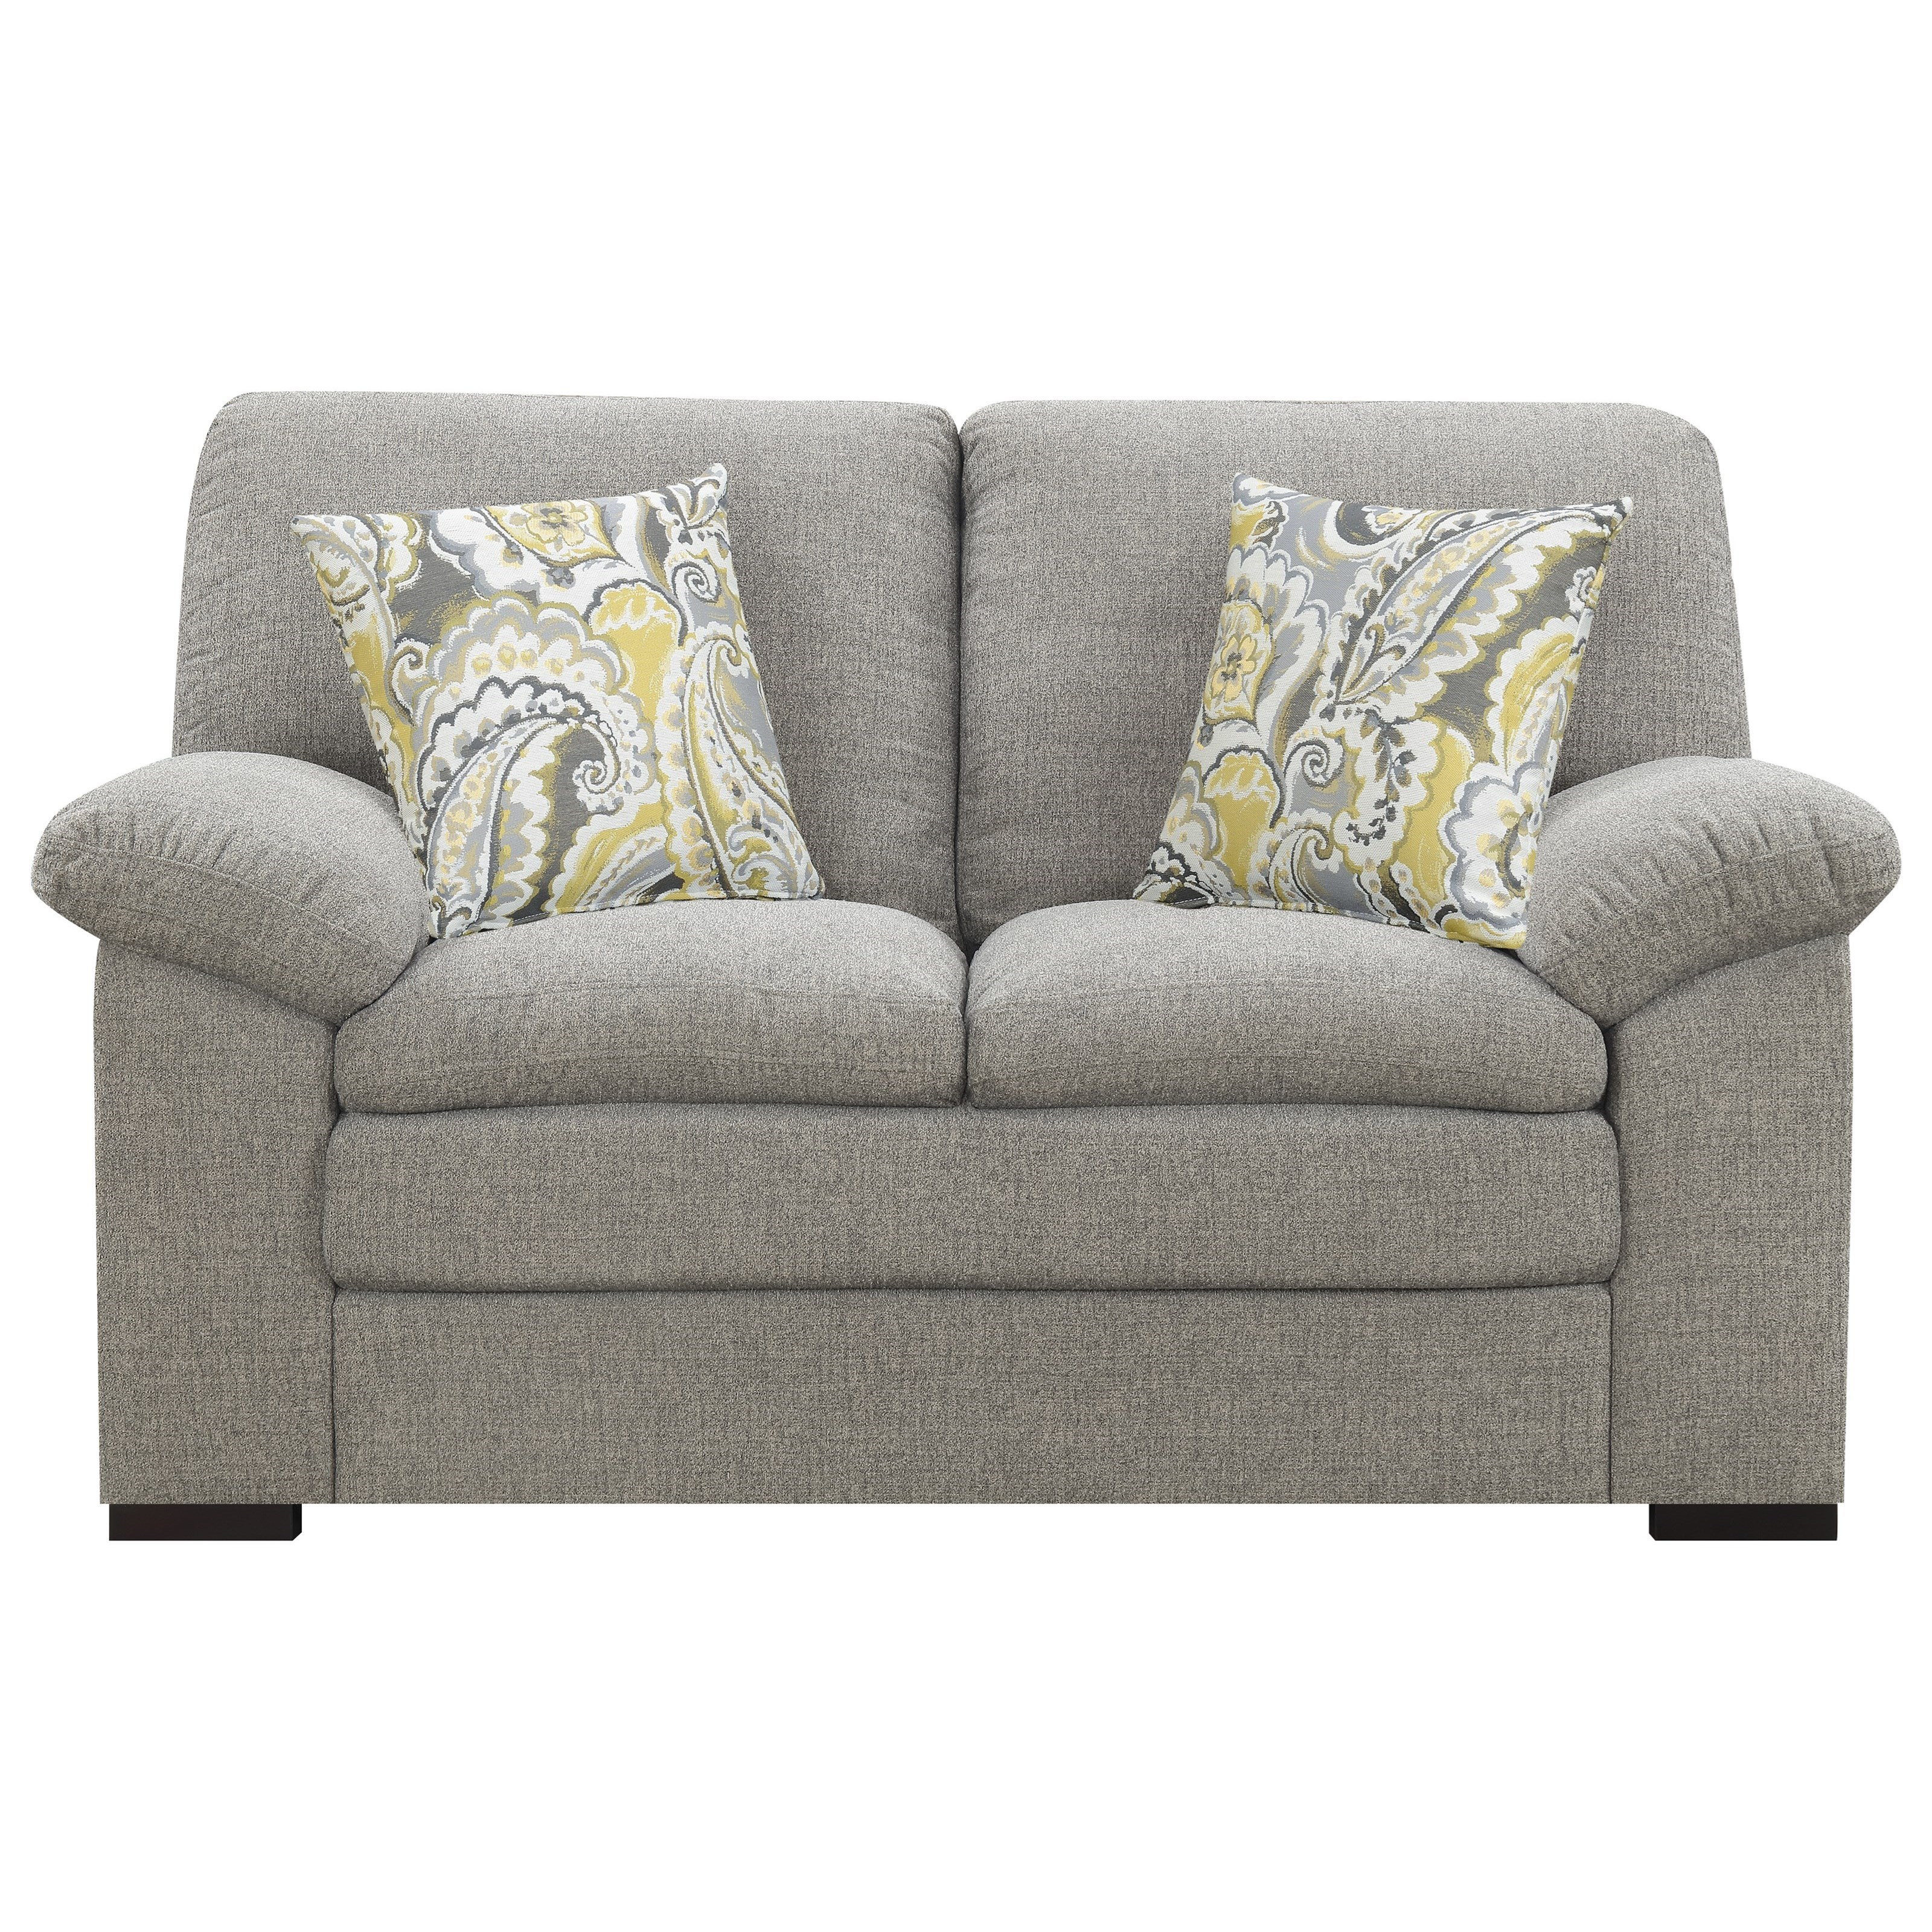 Grandview Loveseat with 2 Accent Pillows at Sadler's Home Furnishings